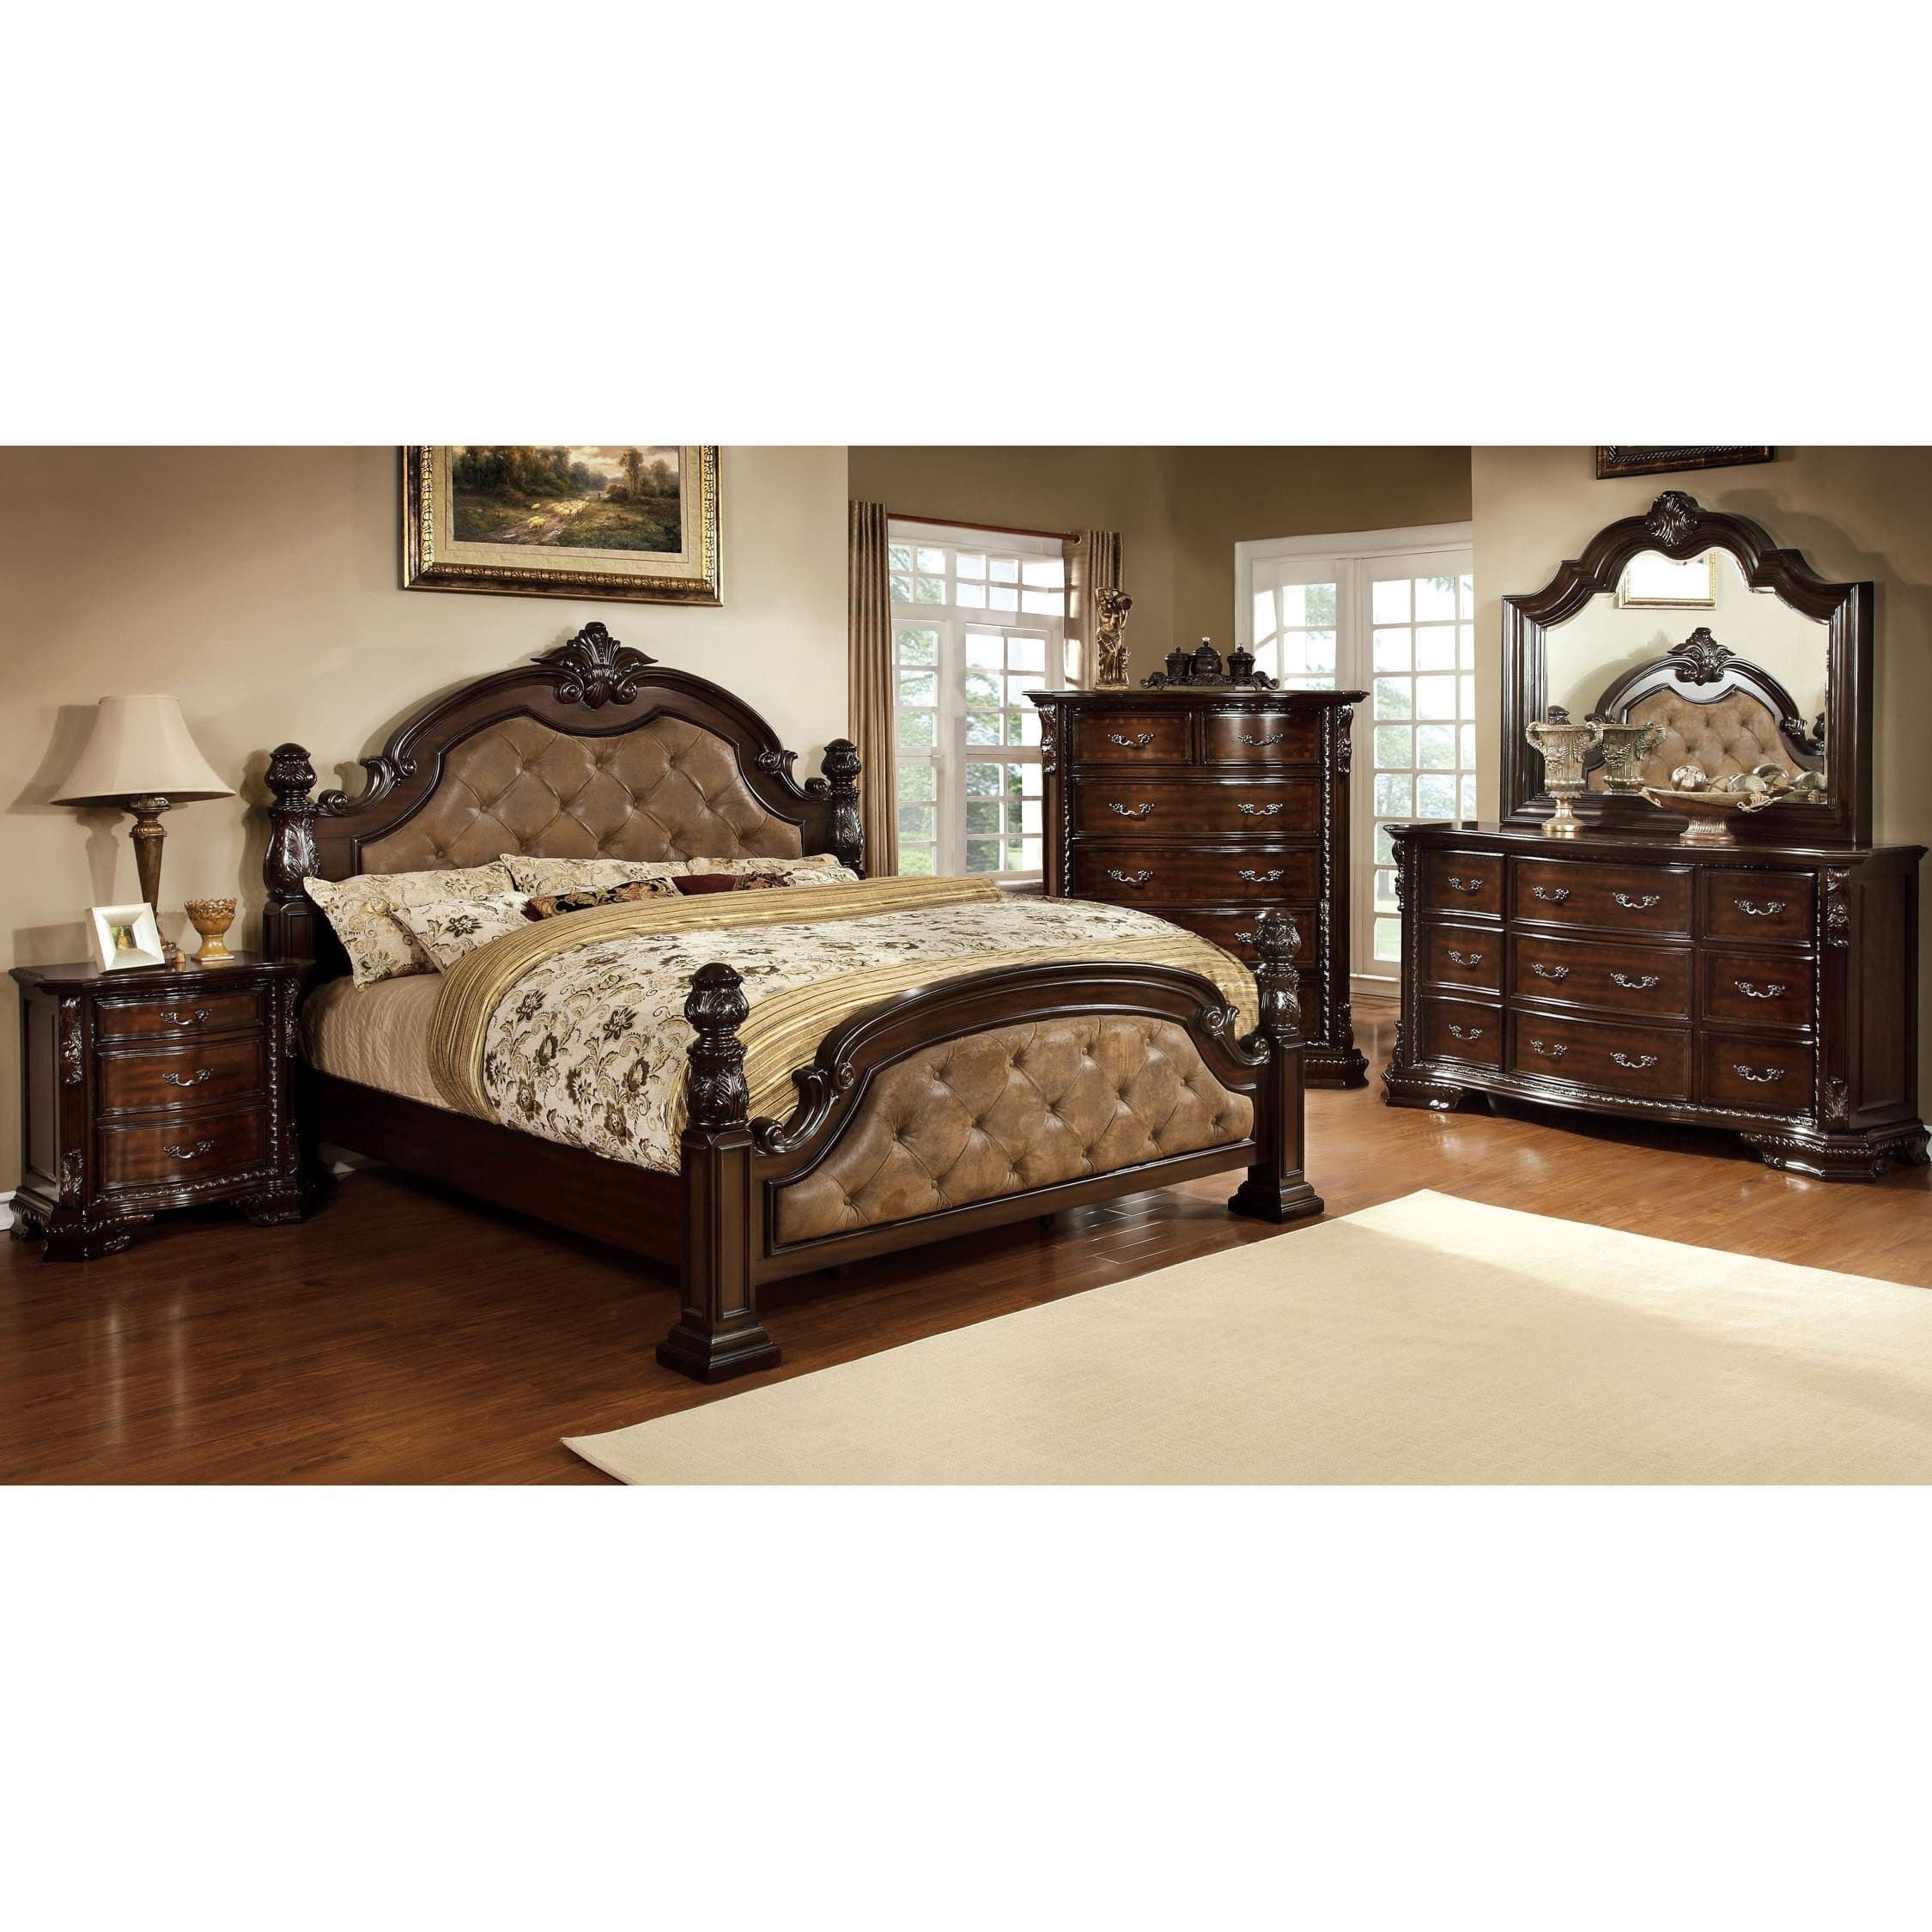 Best Deals On Bedroom Set Elegant Kassania Traditional 4 Piece Bedroom Set by Foa California